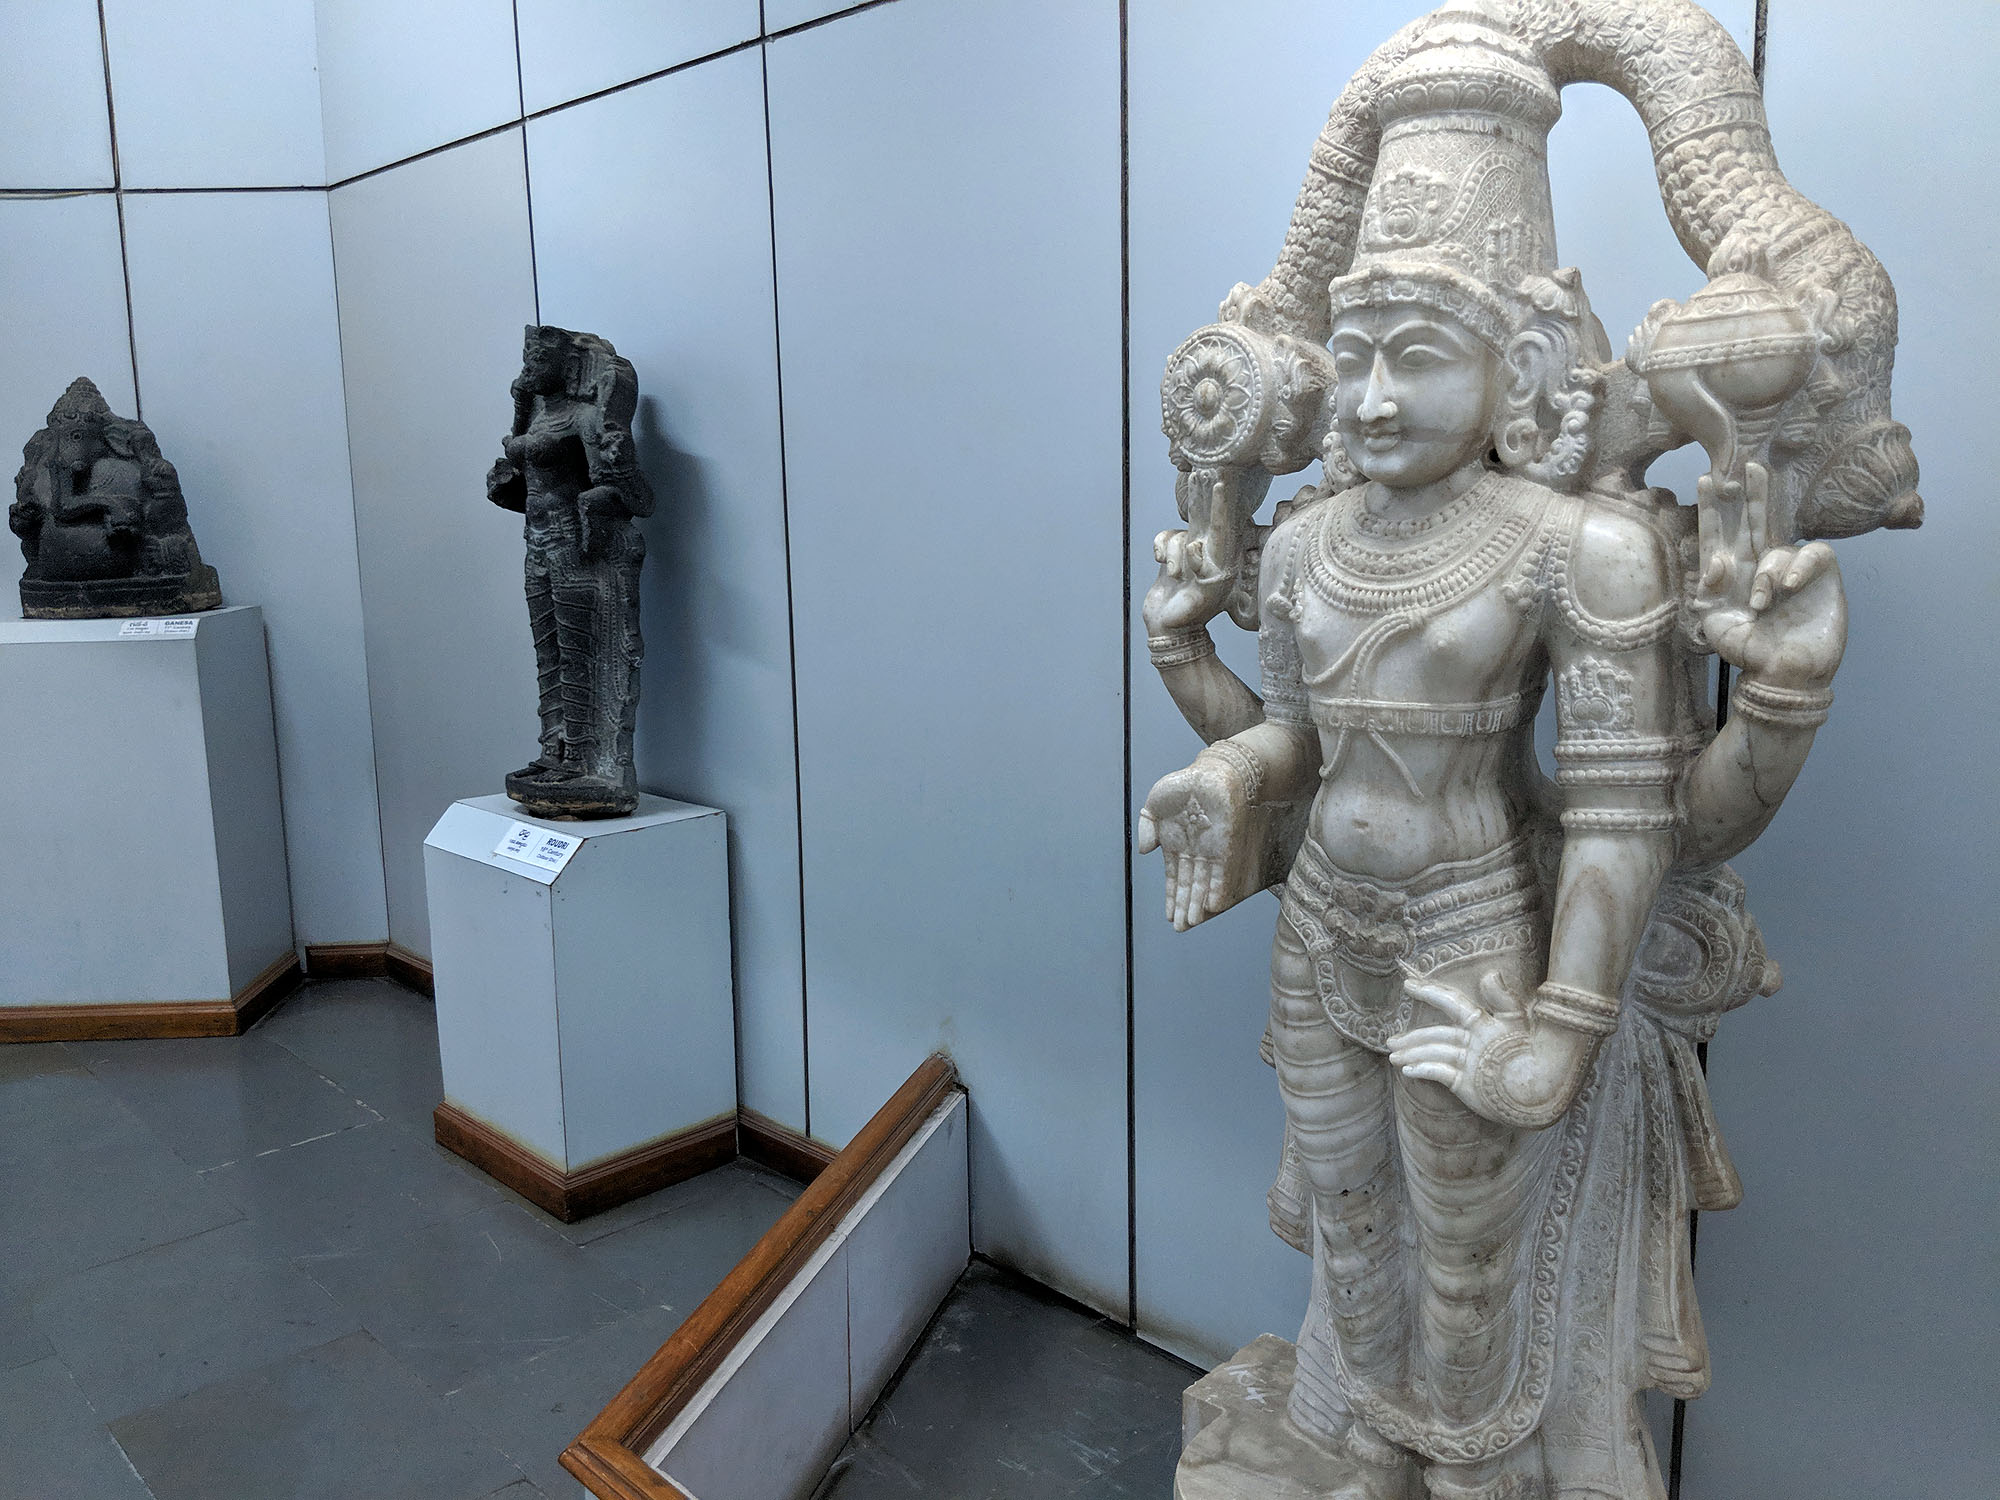 Stone sculptures from Vijayanagar era and before